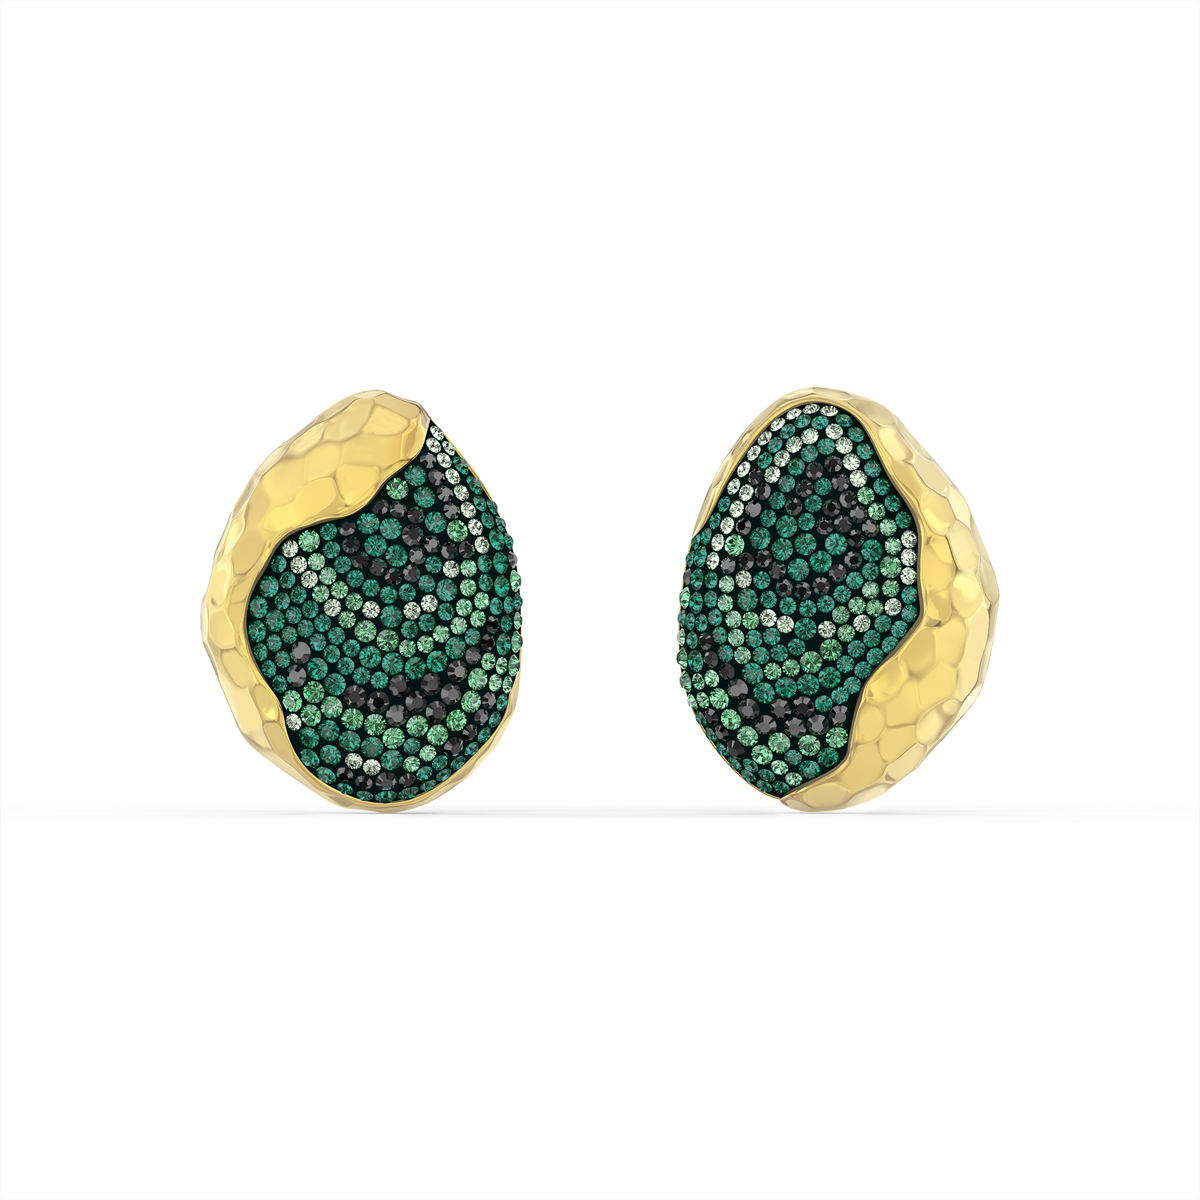 Swarovski The Elements Clip Earrings, Green, Gold Tone Plated